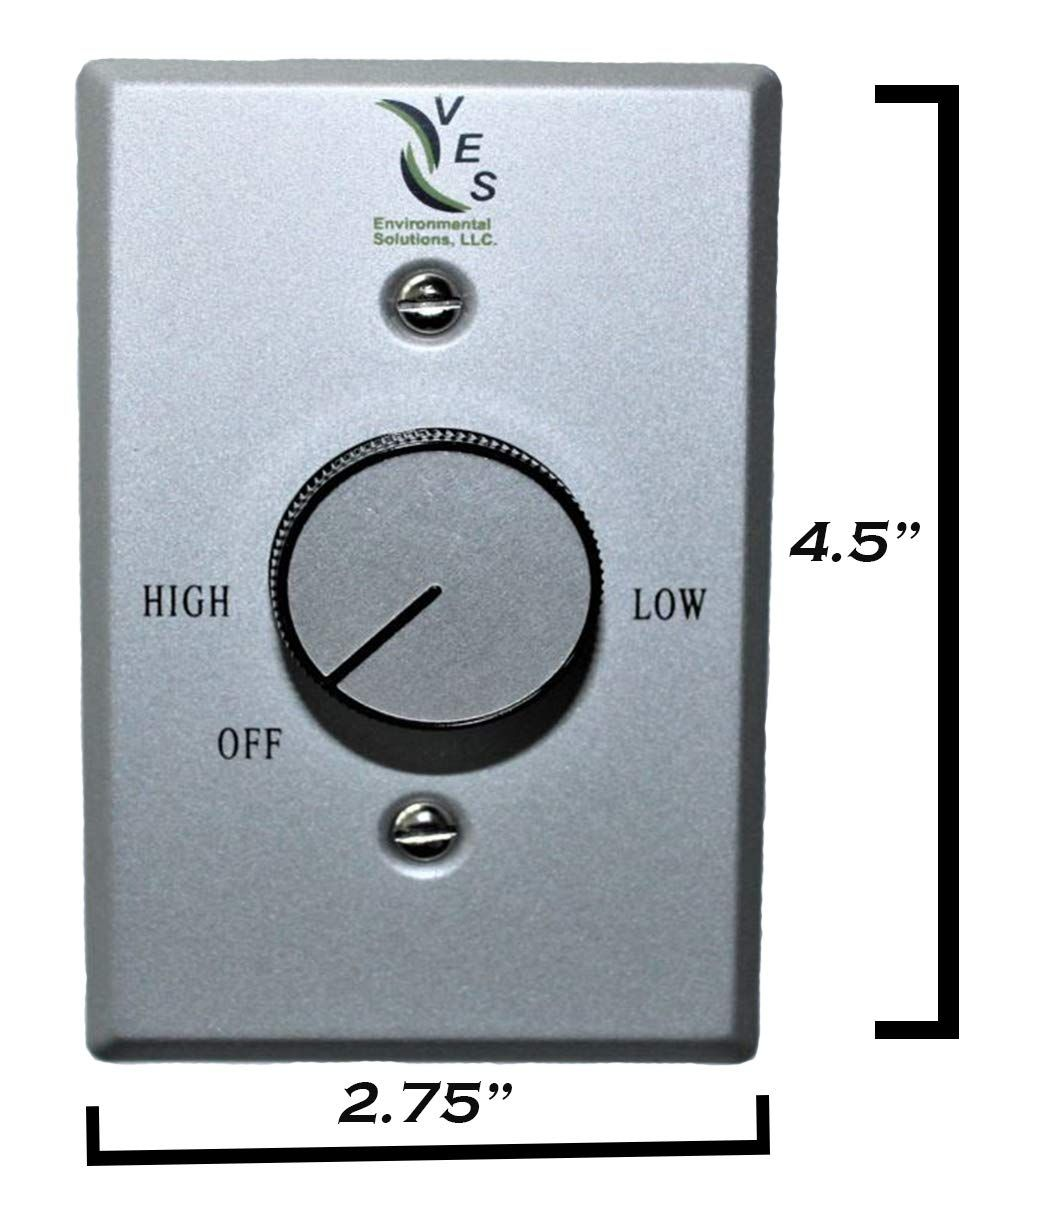 ves ceiling controls variable speed fan black white small plug in